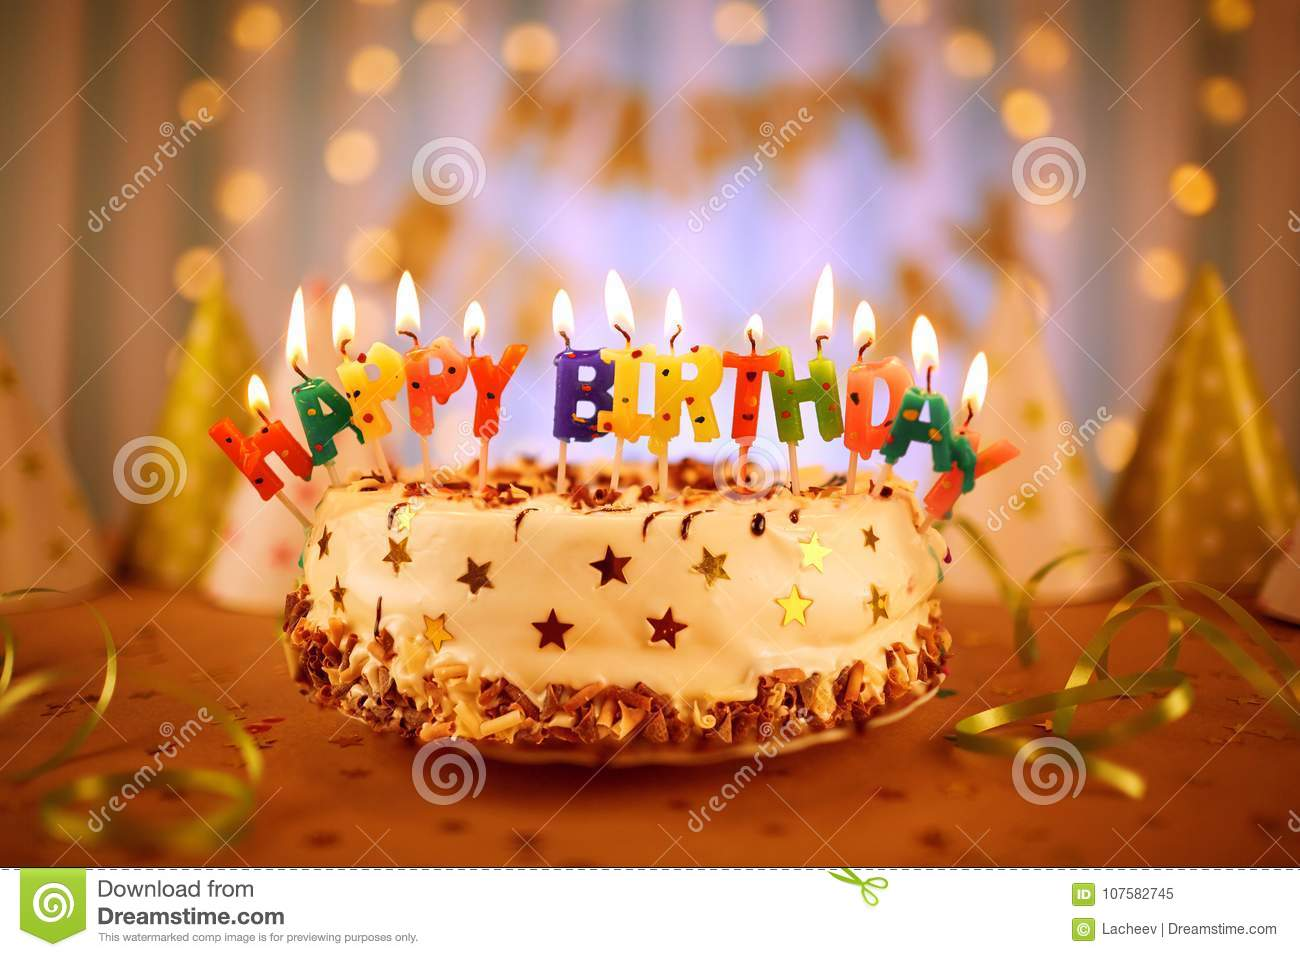 Happy Birthday Cake With Candles Stock Image Image Of Food